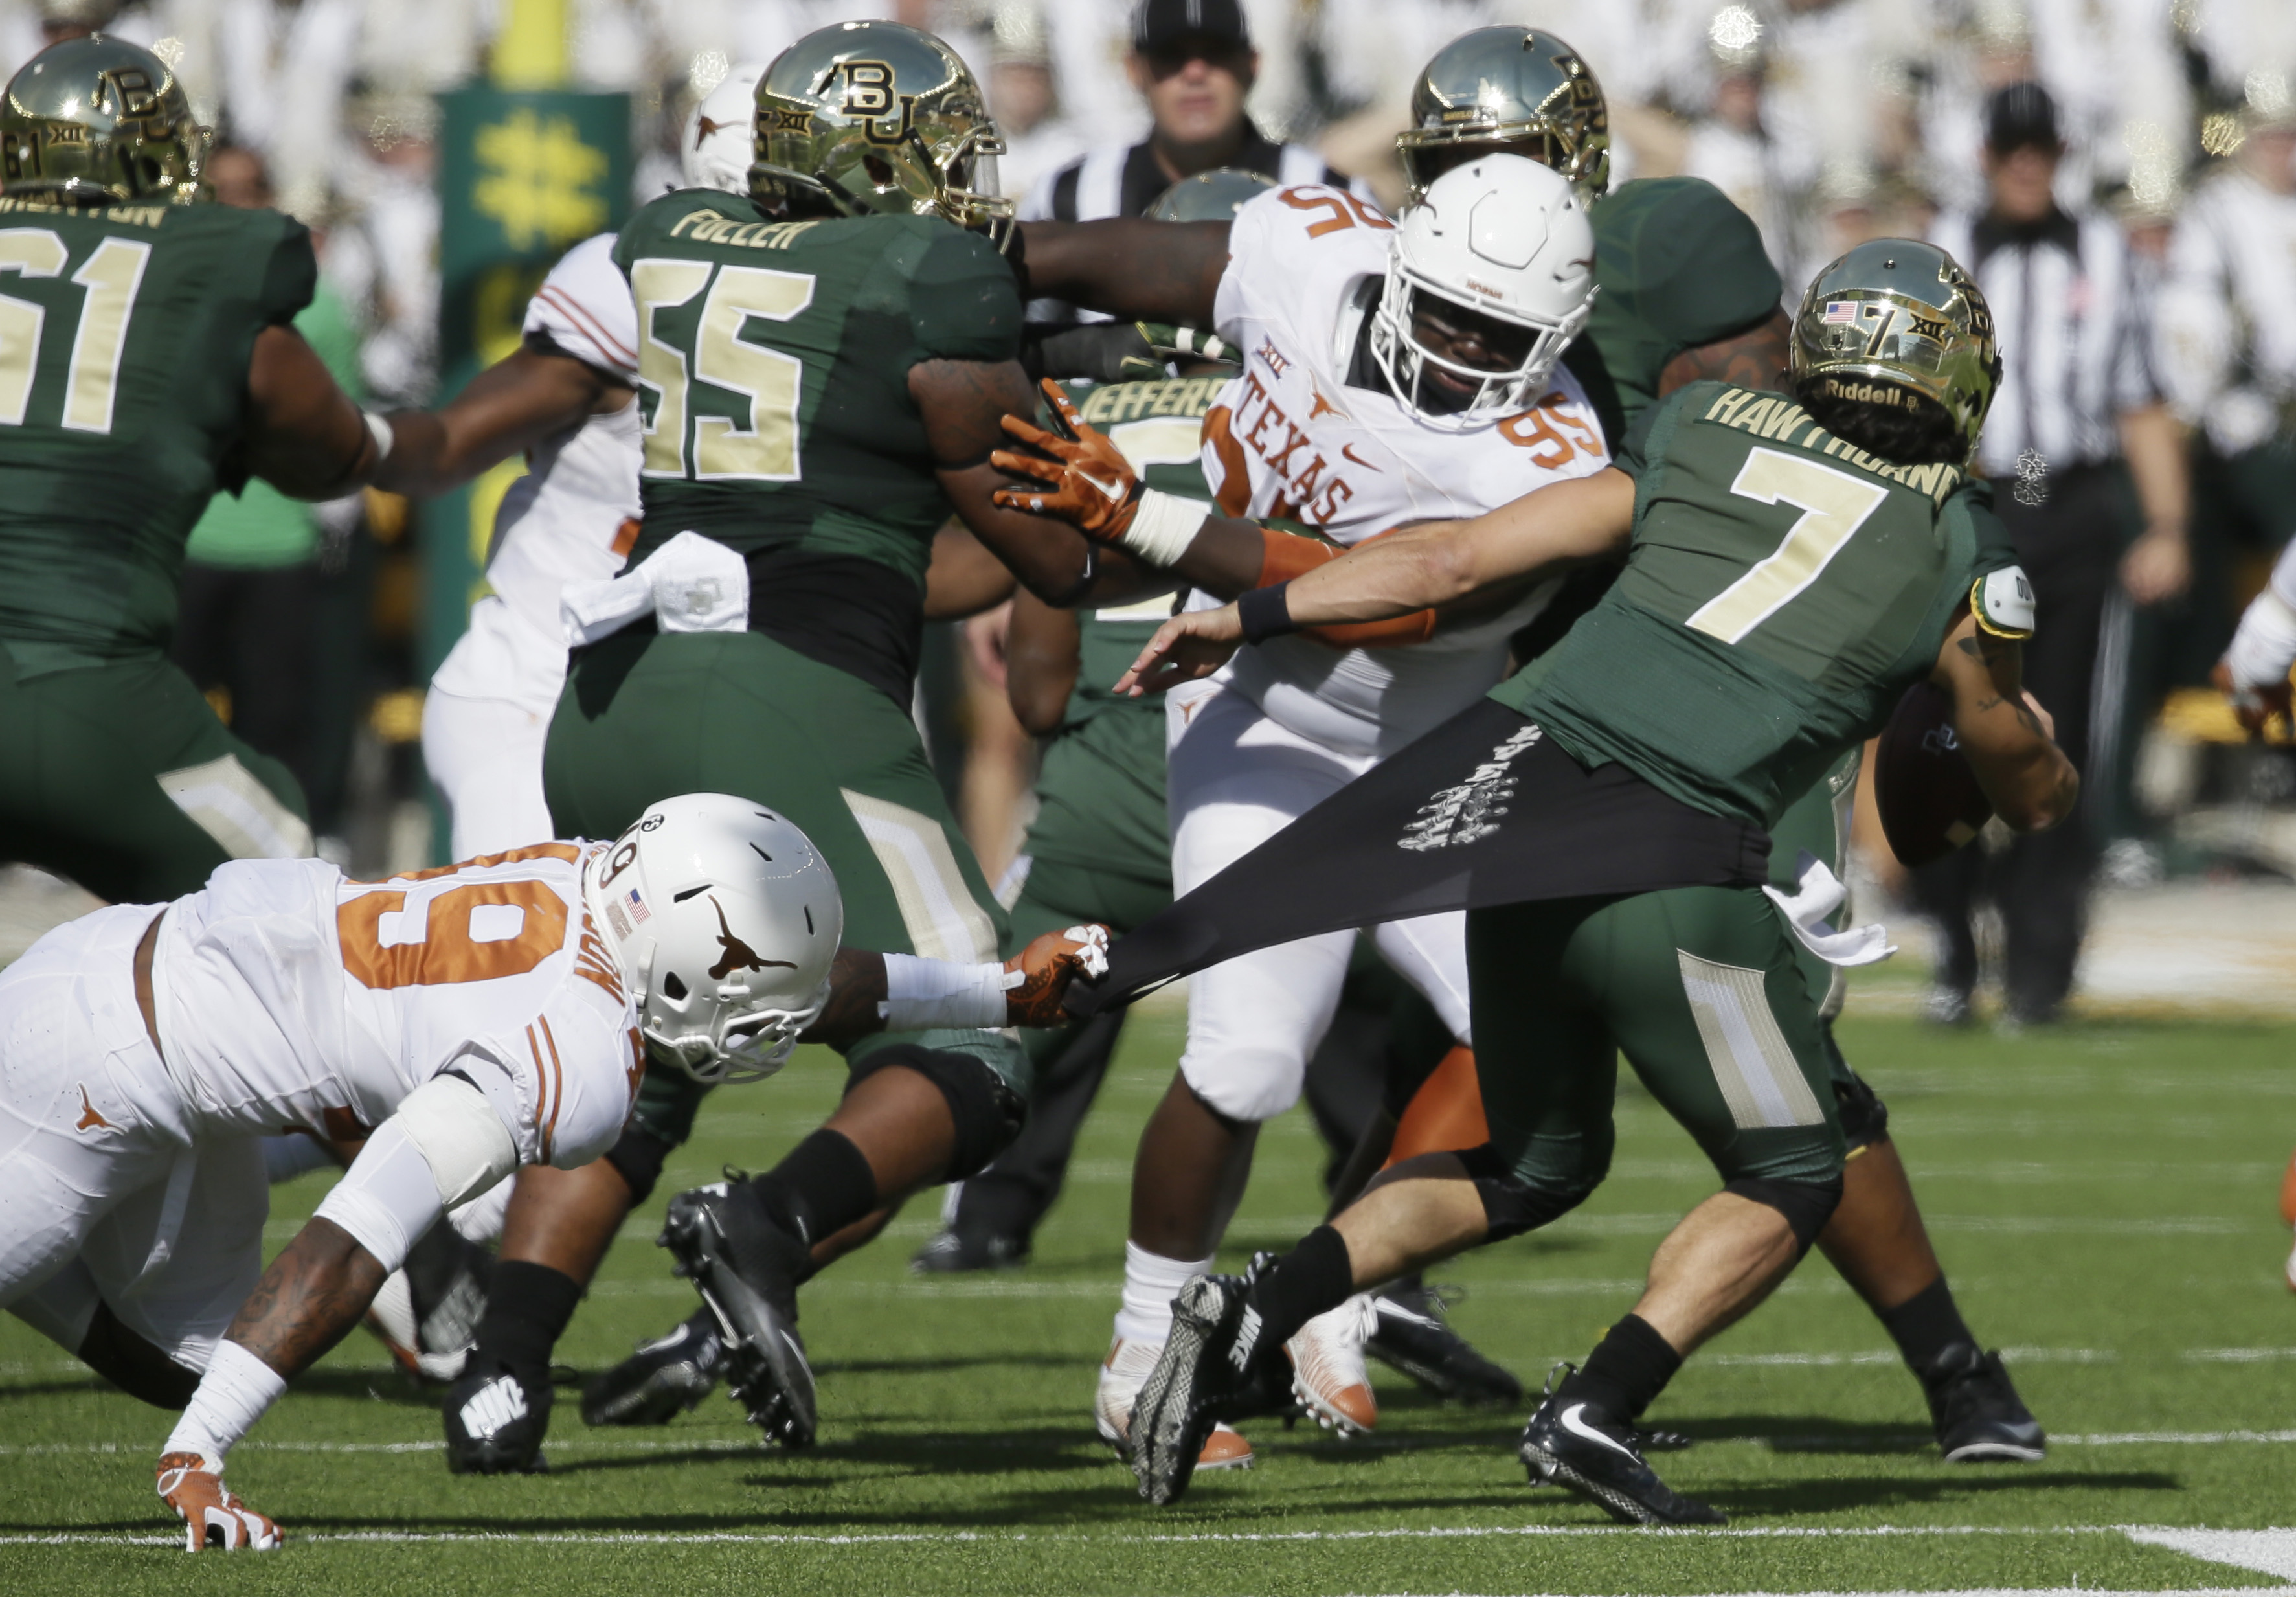 Baylor quarterback Lynx Hawthorne (7) is pulled by Texas defensive end Derick Roberson (49) as Baylor offensive lineman Kyle Fuller (55) blocks Texas defensive tackle Poona Ford (95) during the first half of an NCAA college football game Saturday, Dec. 5,